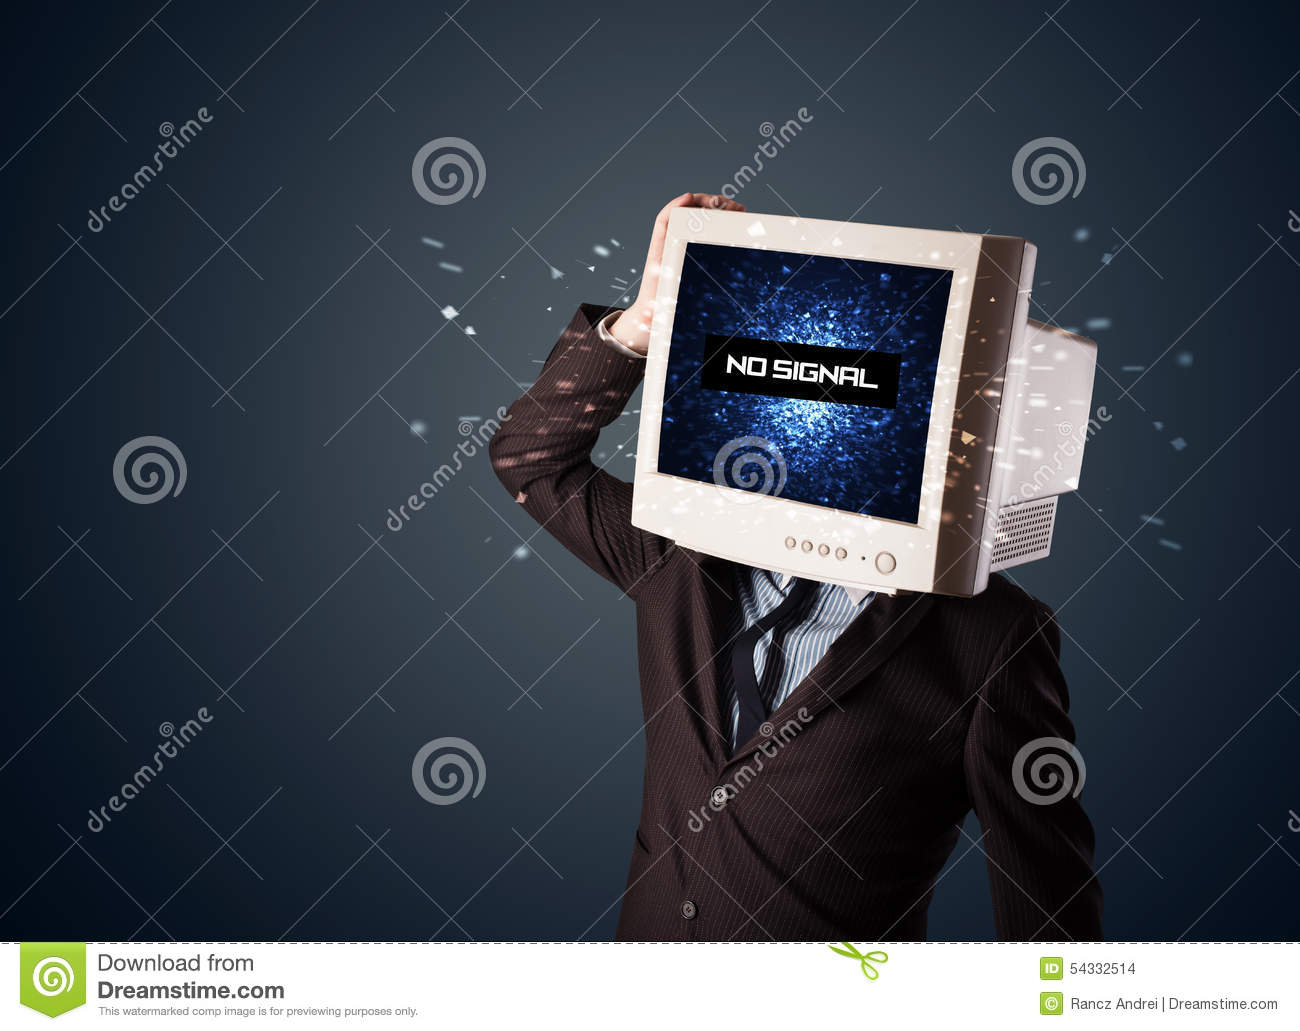 Man With A Monitor Head, No Signal Sign On The Display Stock Photo